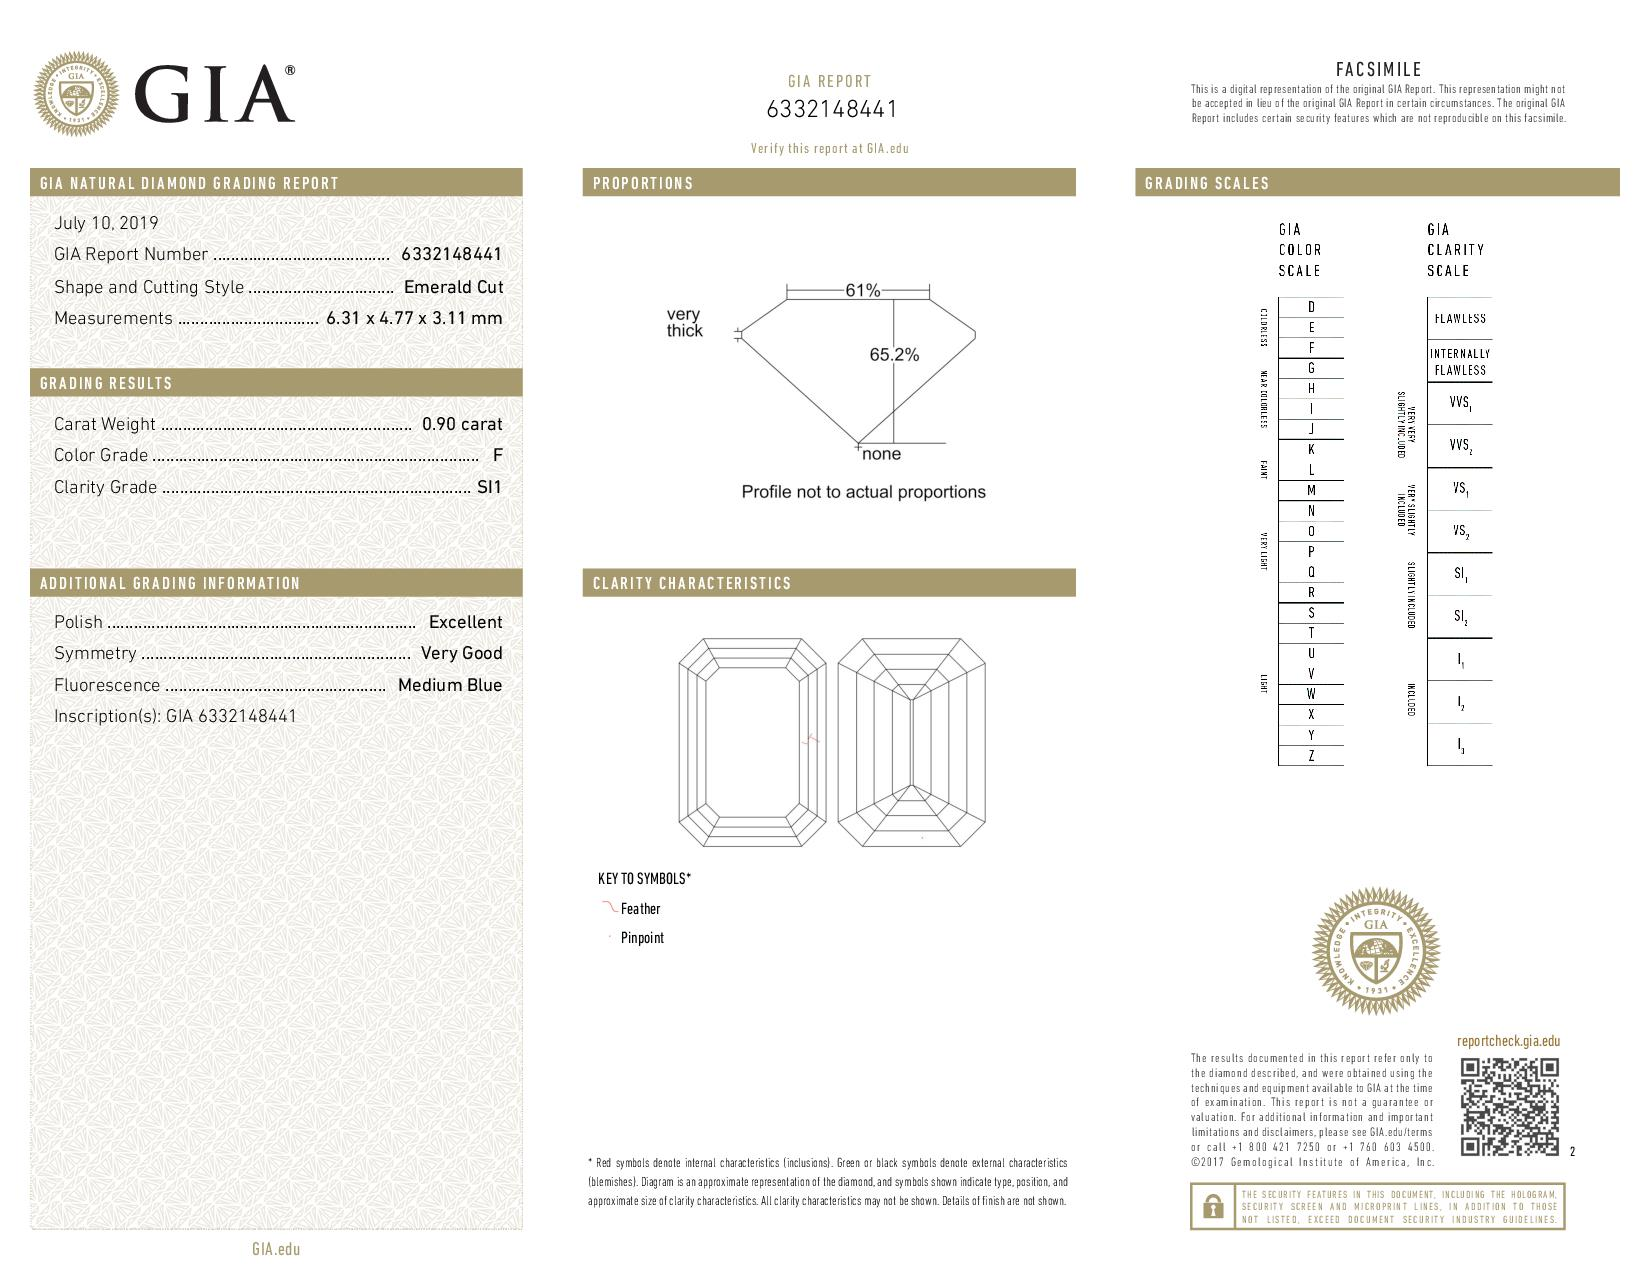 This is a 0.90 carat emerald shape, F color, SI1 clarity natural diamond accompanied by a GIA grading report.